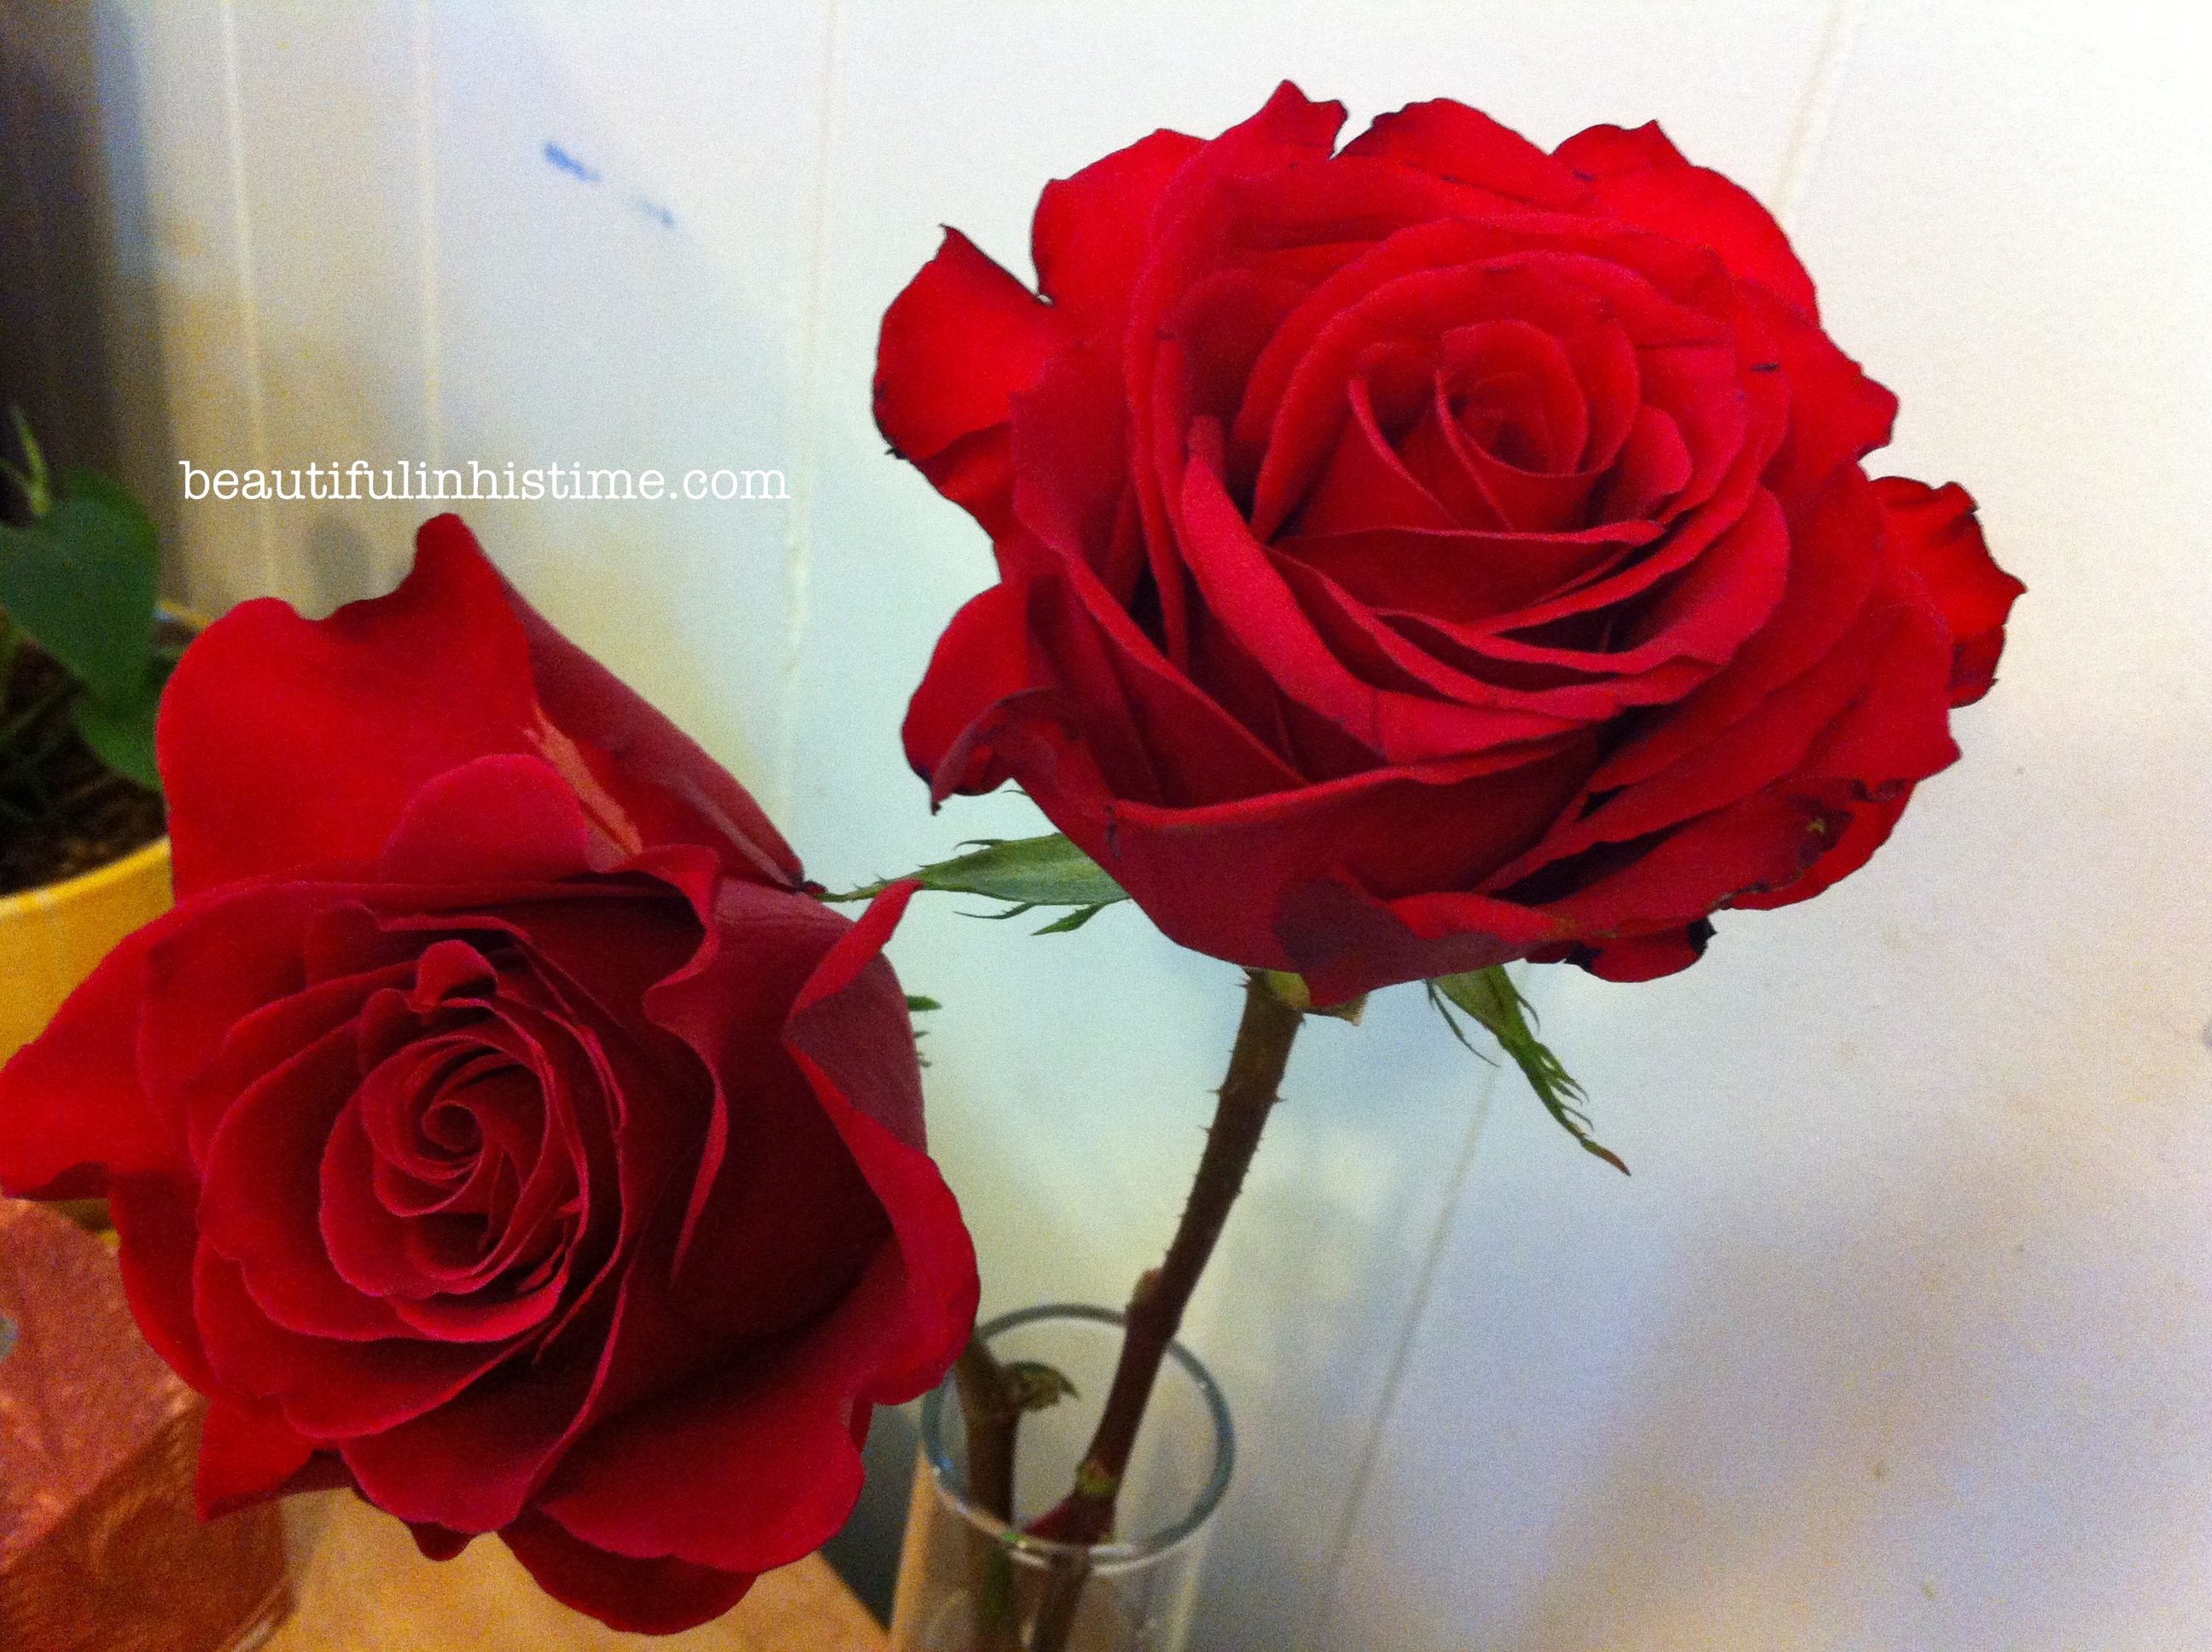 roses from friends